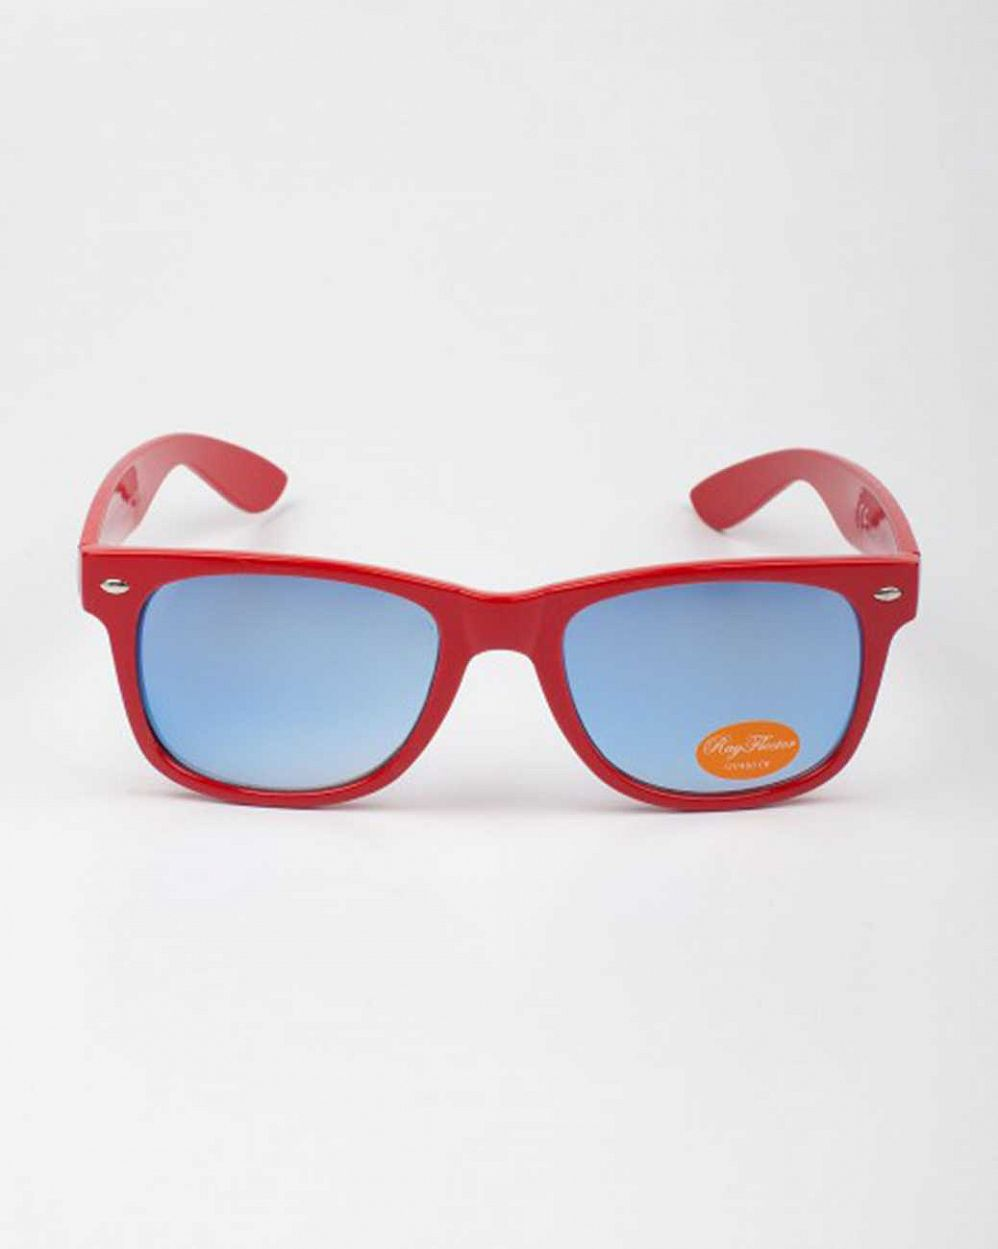 купить Очки Sunglasses Classic Modern Wayfarer Colored Lens Red в Москве